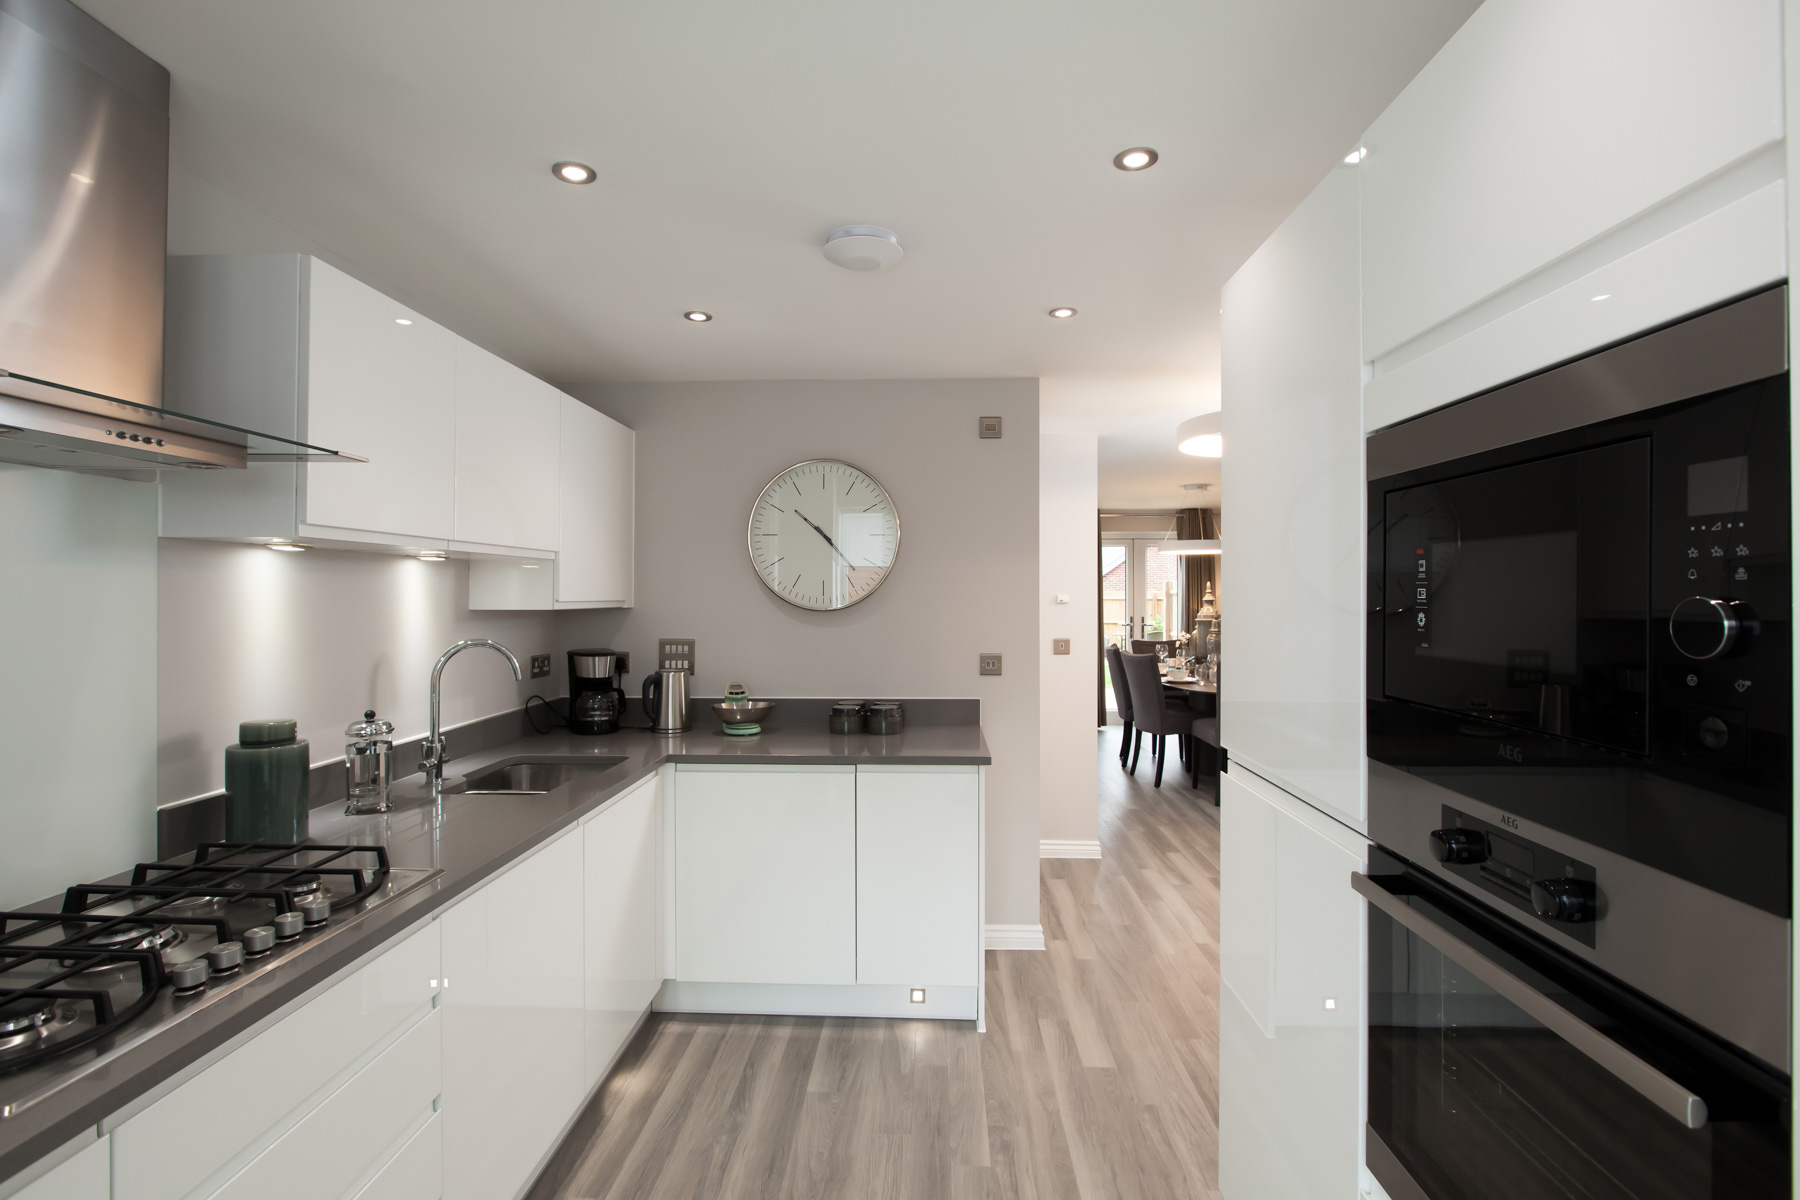 TWEL_Whitmore Park_PC41_Danbury_ Kitchen 2